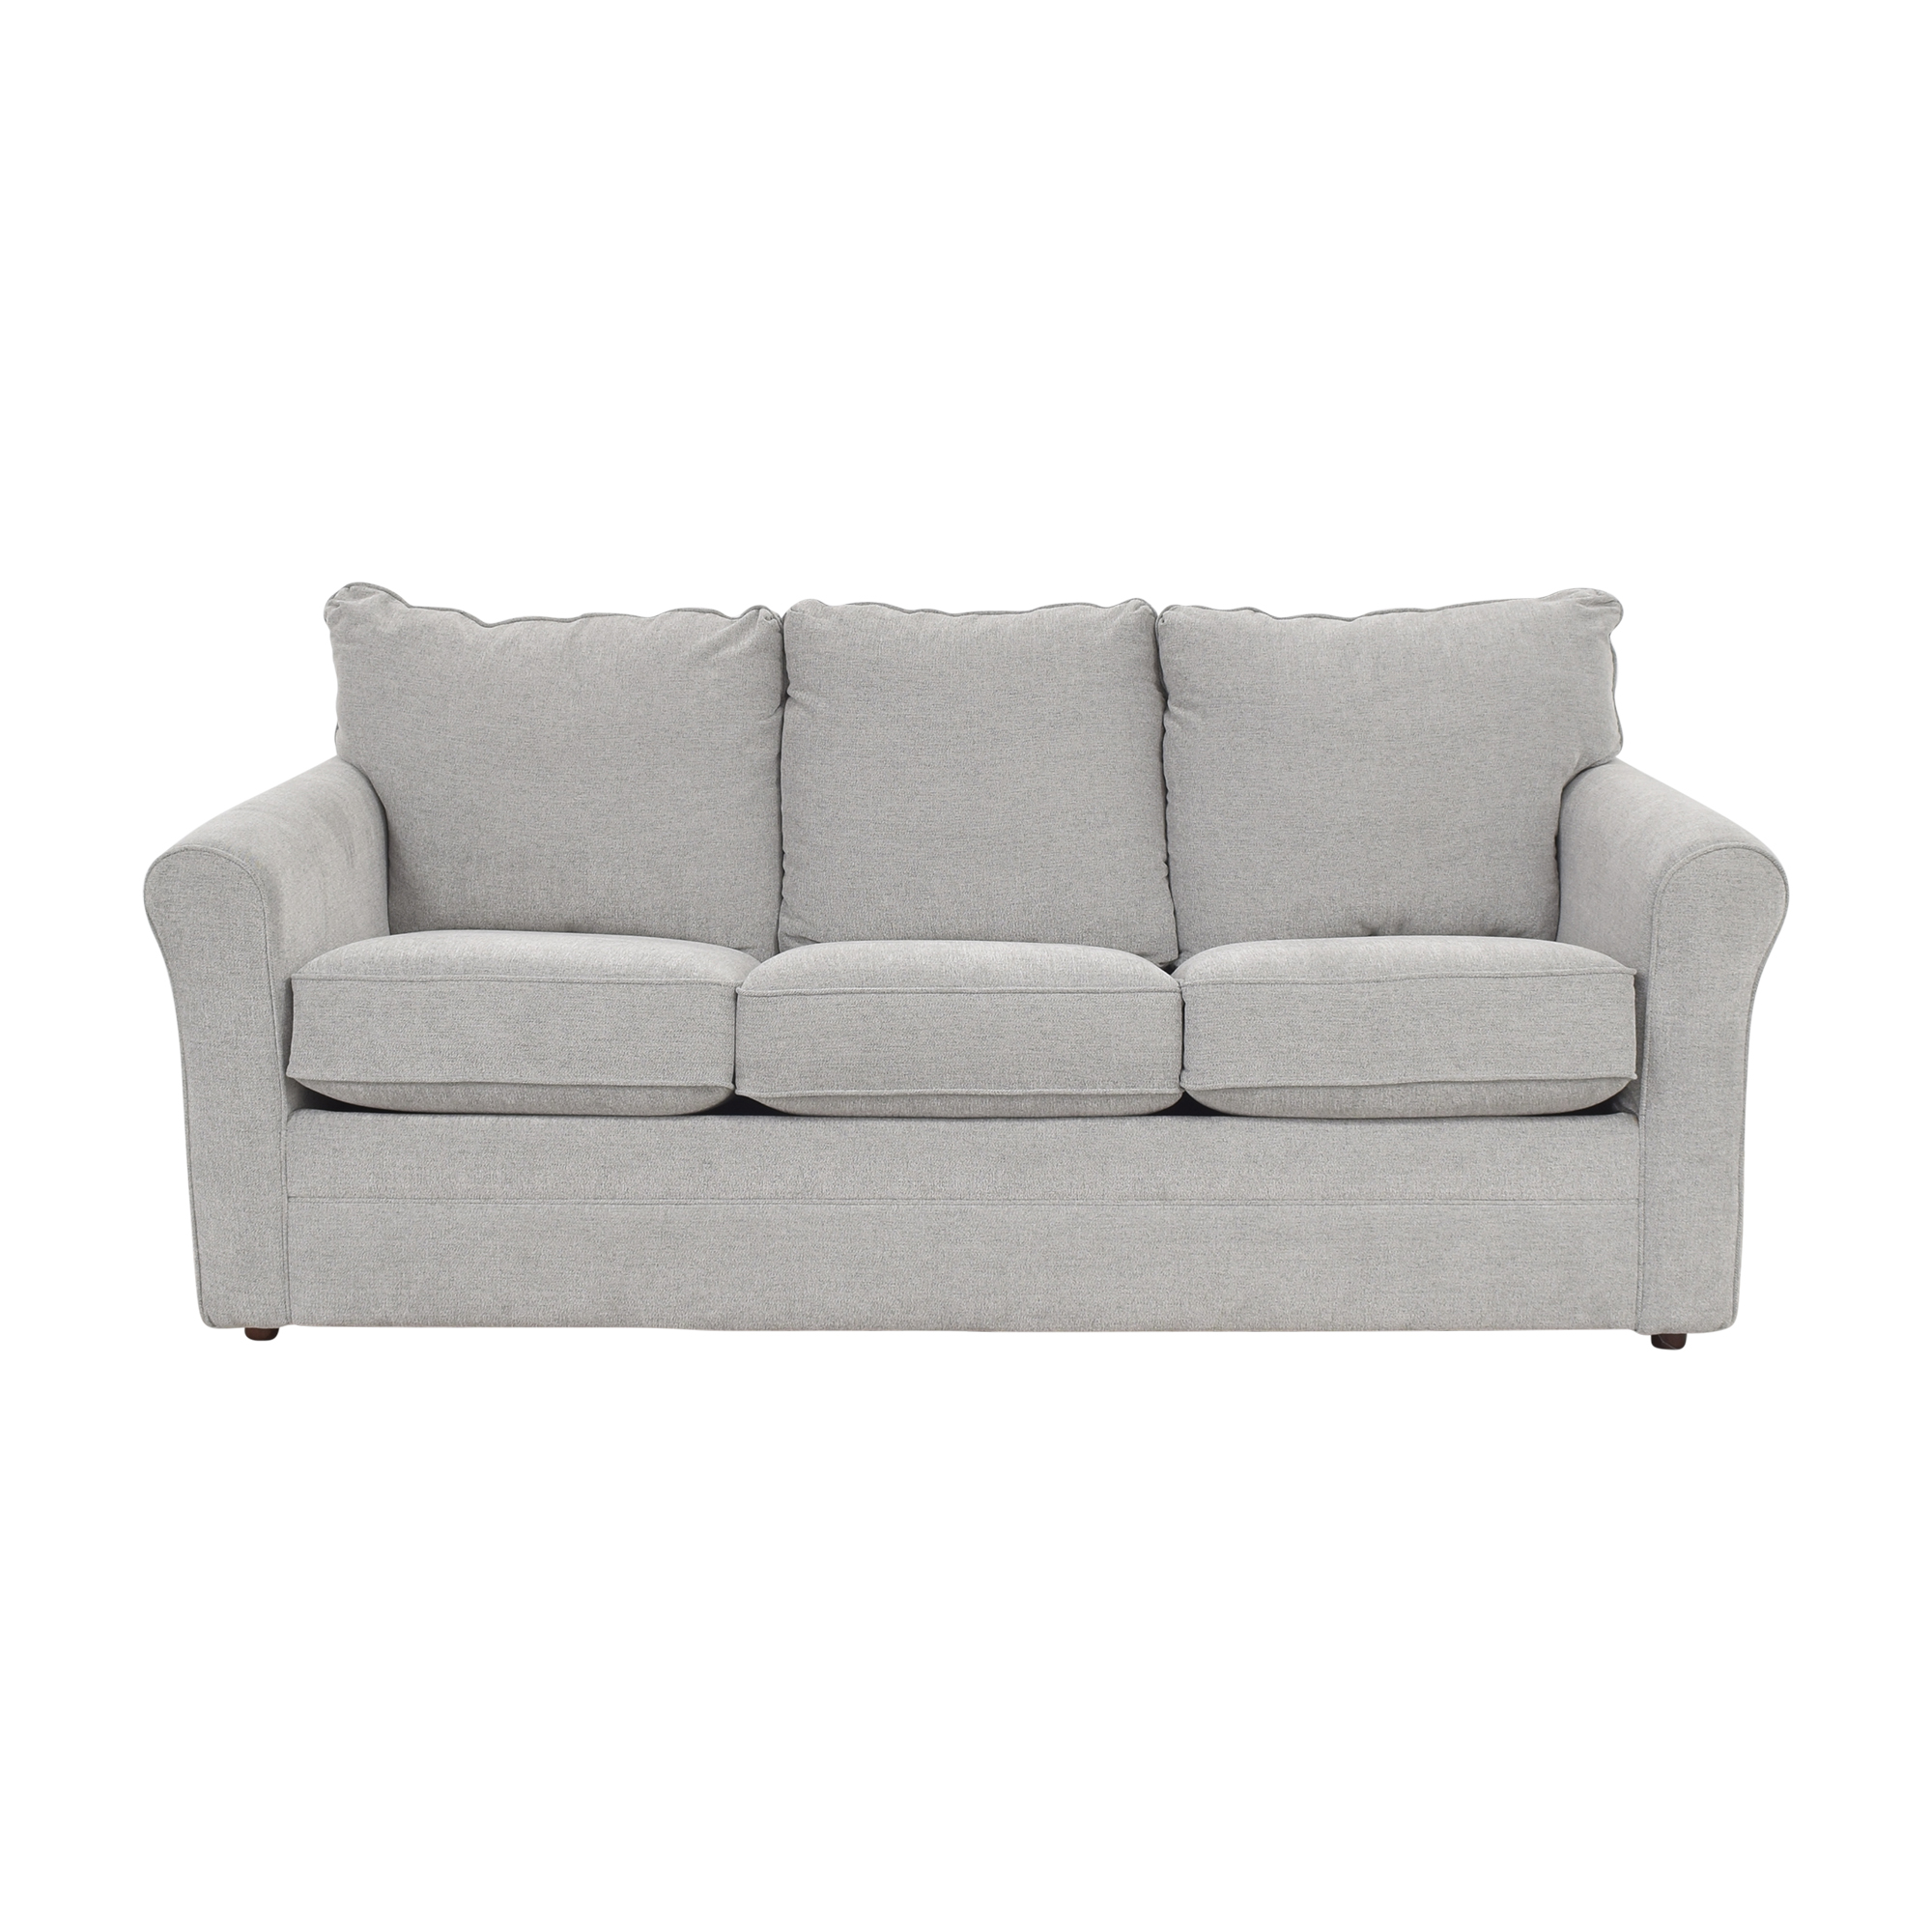 La-Z-Boy La-Z-Boy Leah Supreme Comfort Queen Sleeper Sofa pa